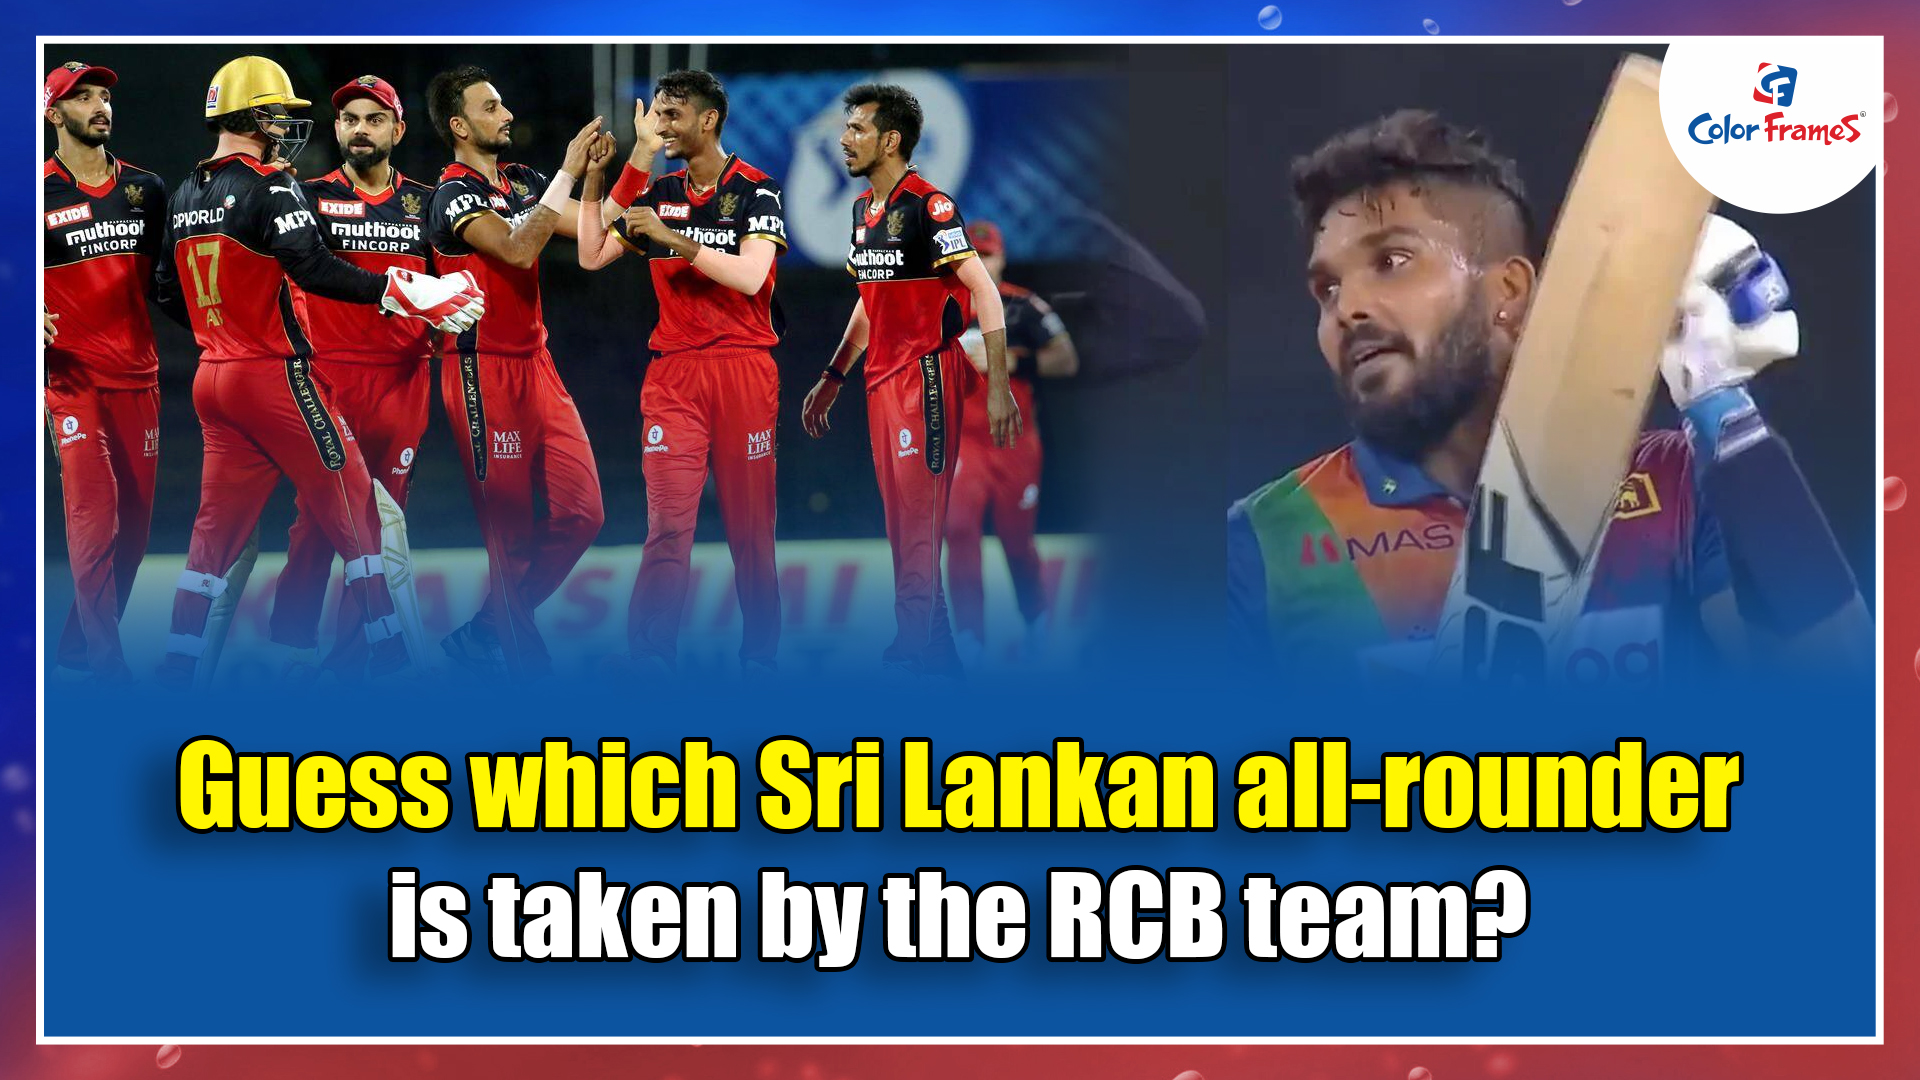 Guess which Sri Lankan all-rounder is taken by the RCB team?